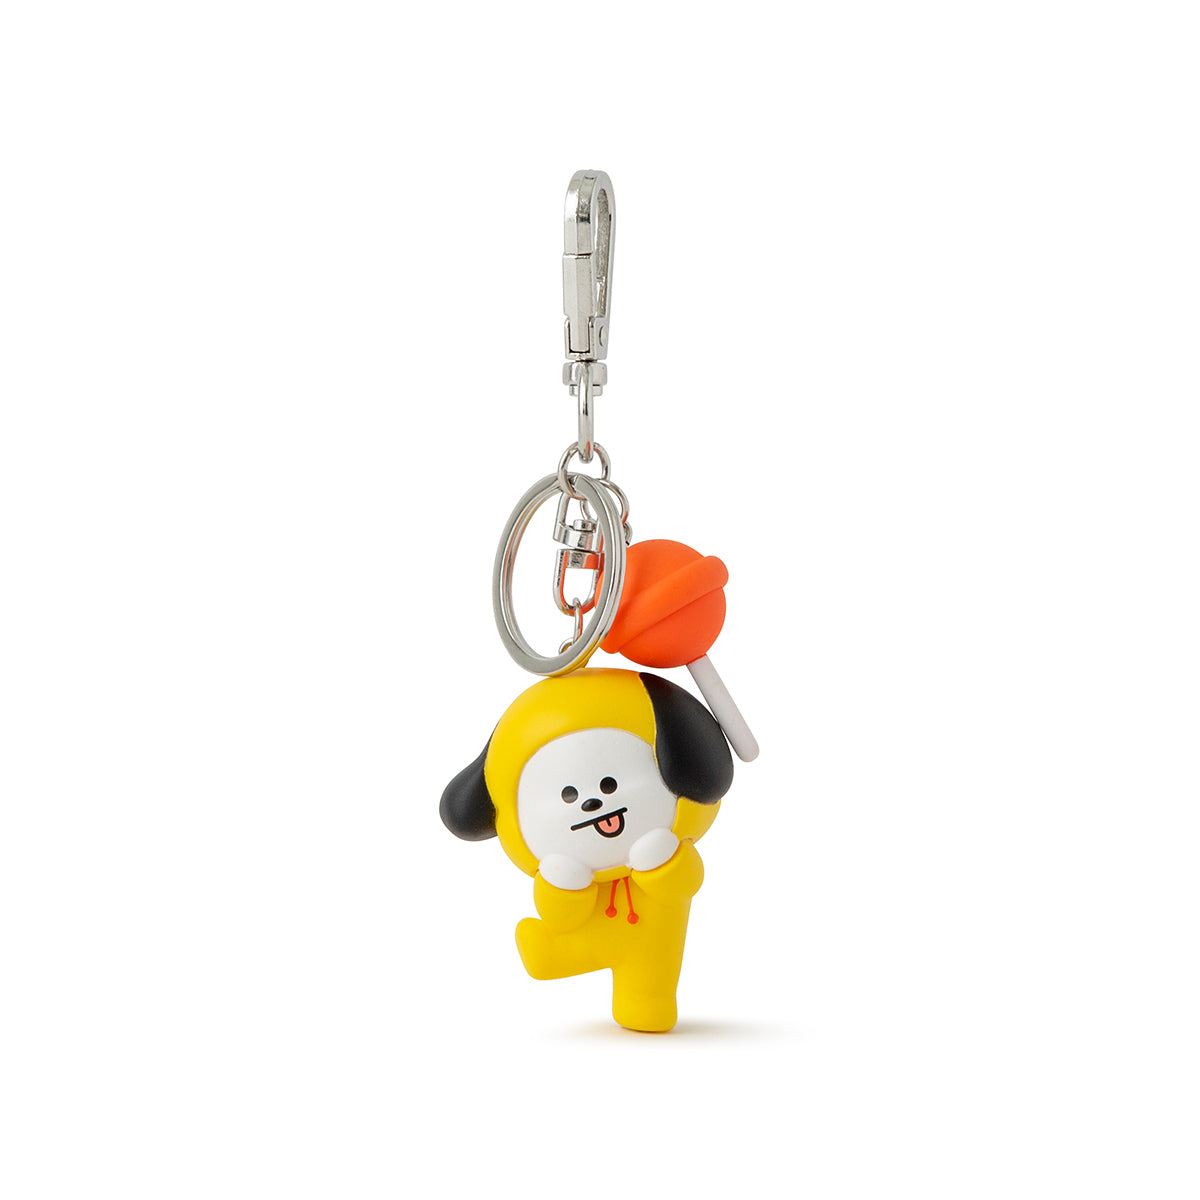 BTS BT21 Character Mini Rubber Figure Keyring Key Chain Great gifts for bts fan